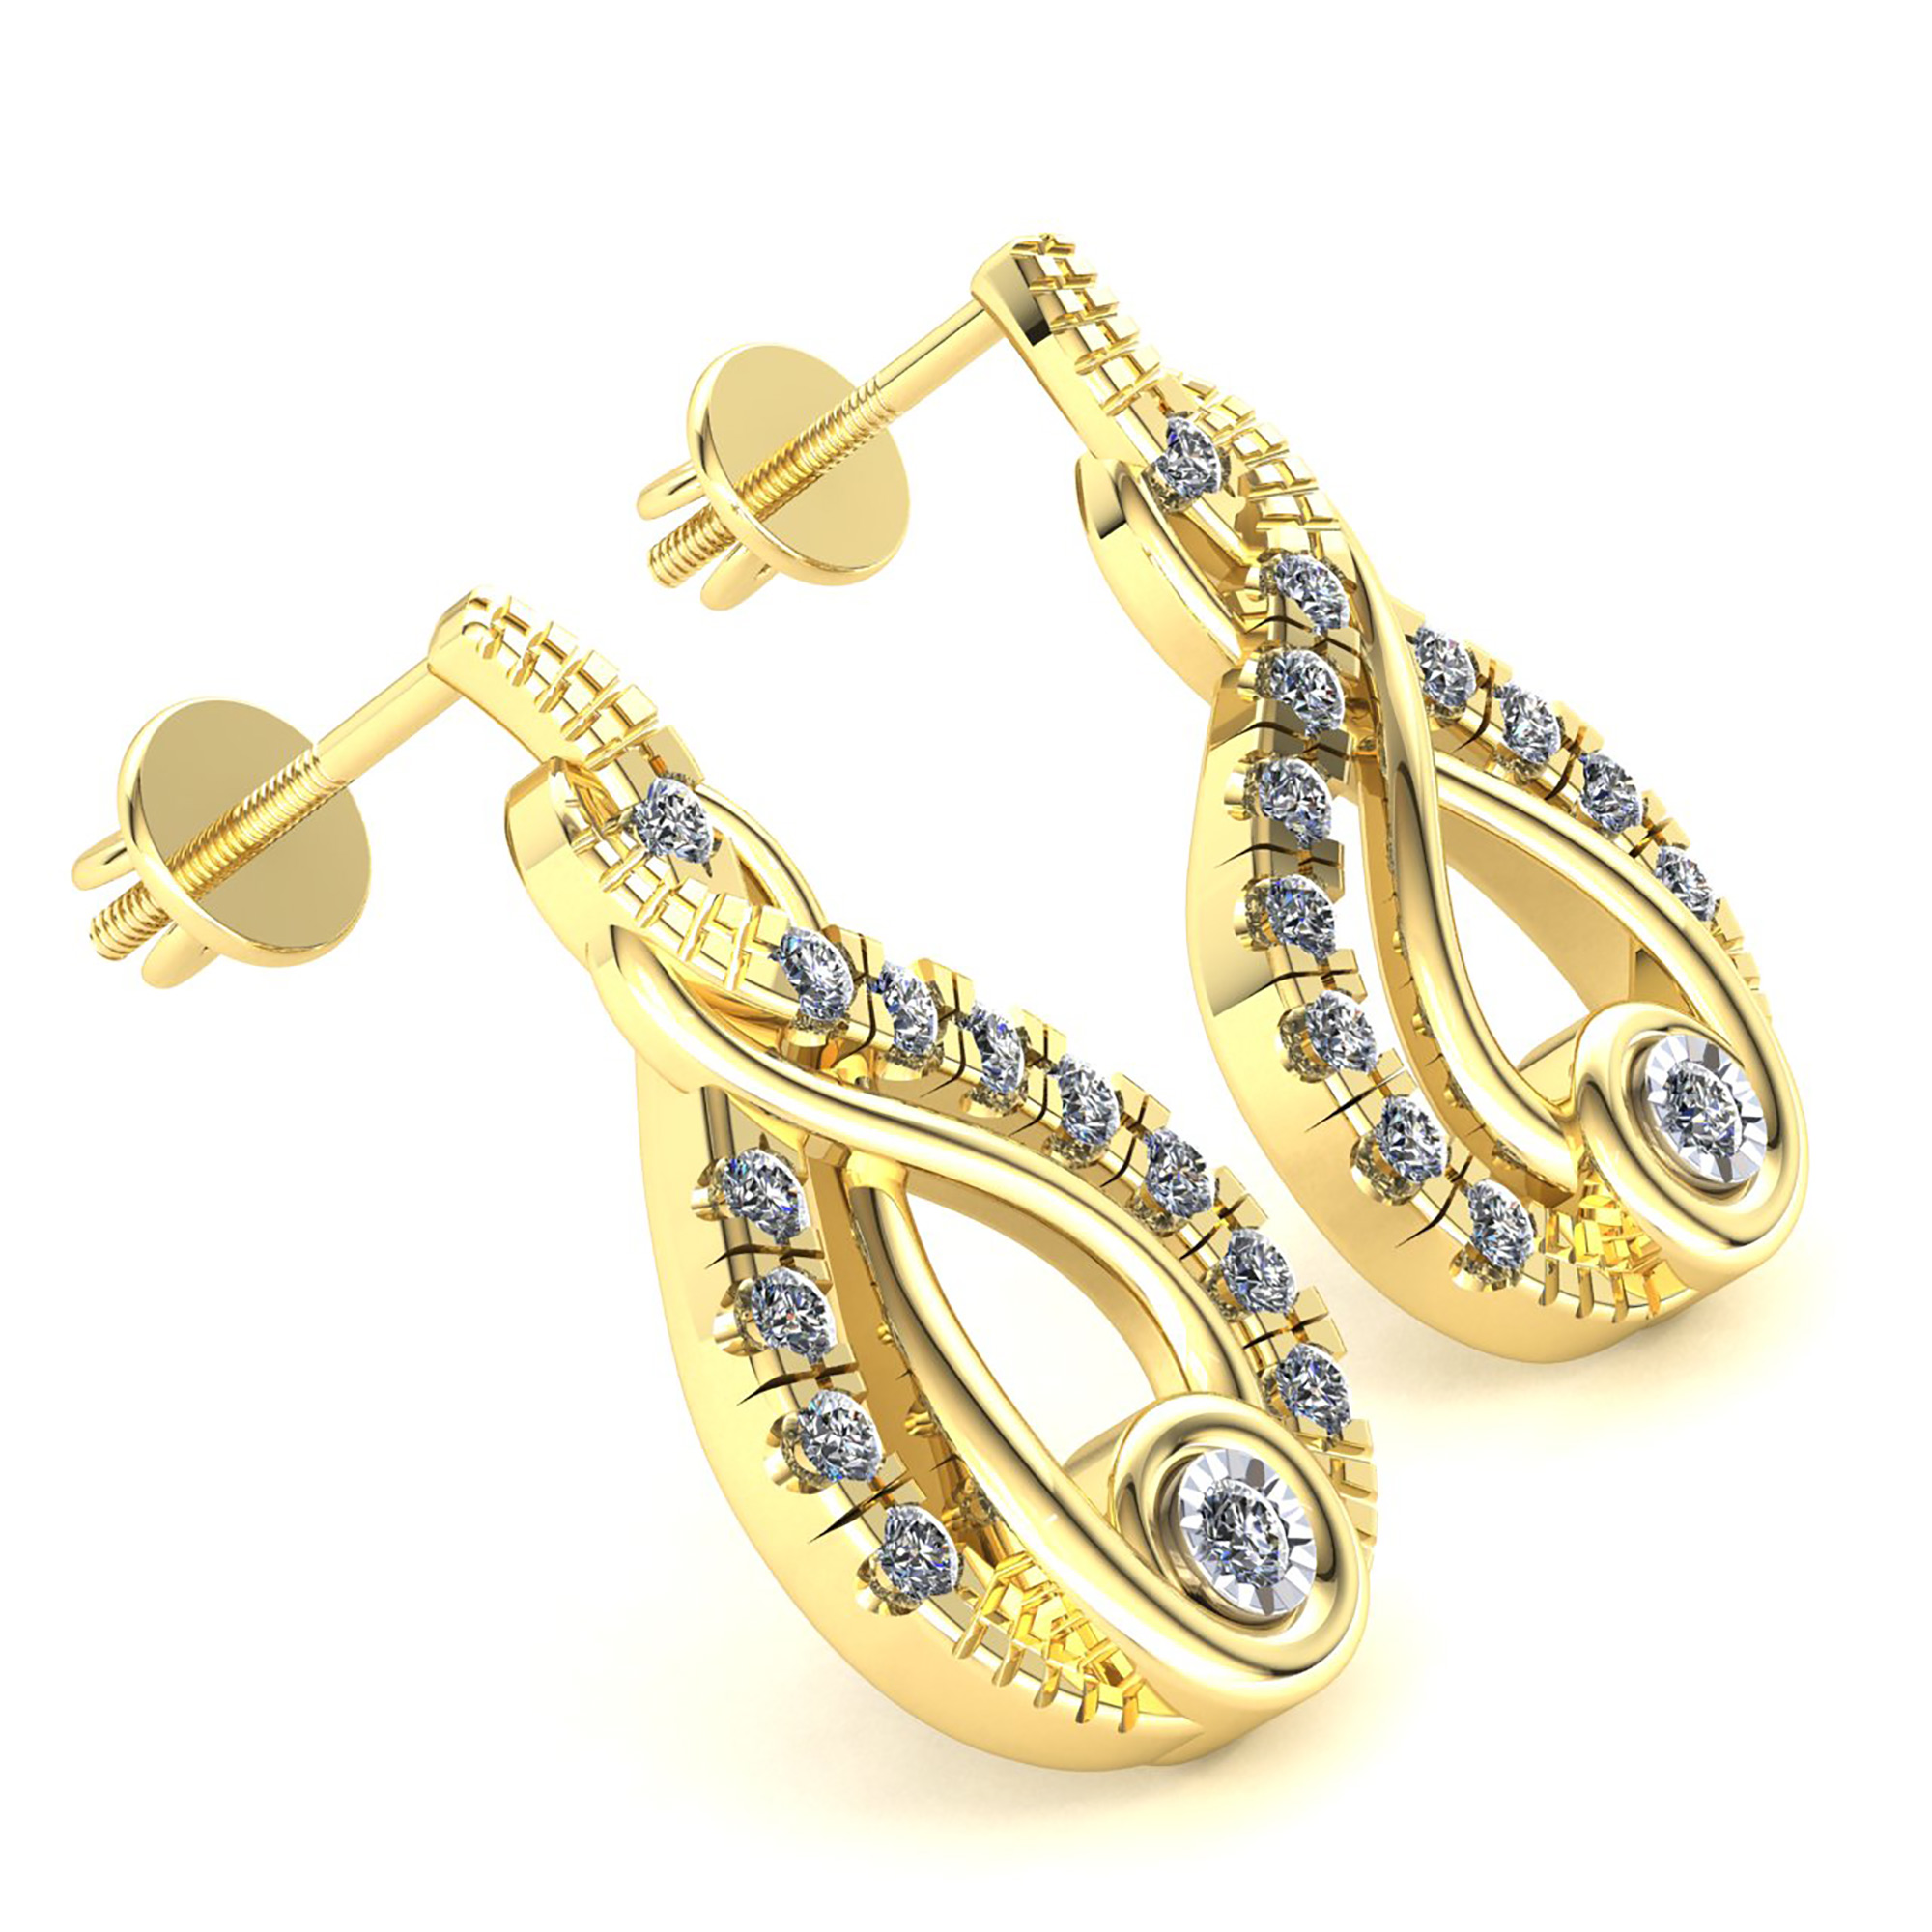 earrings clarity cttw amazon i diamond jewelry gold curve the com dp color ear j pin